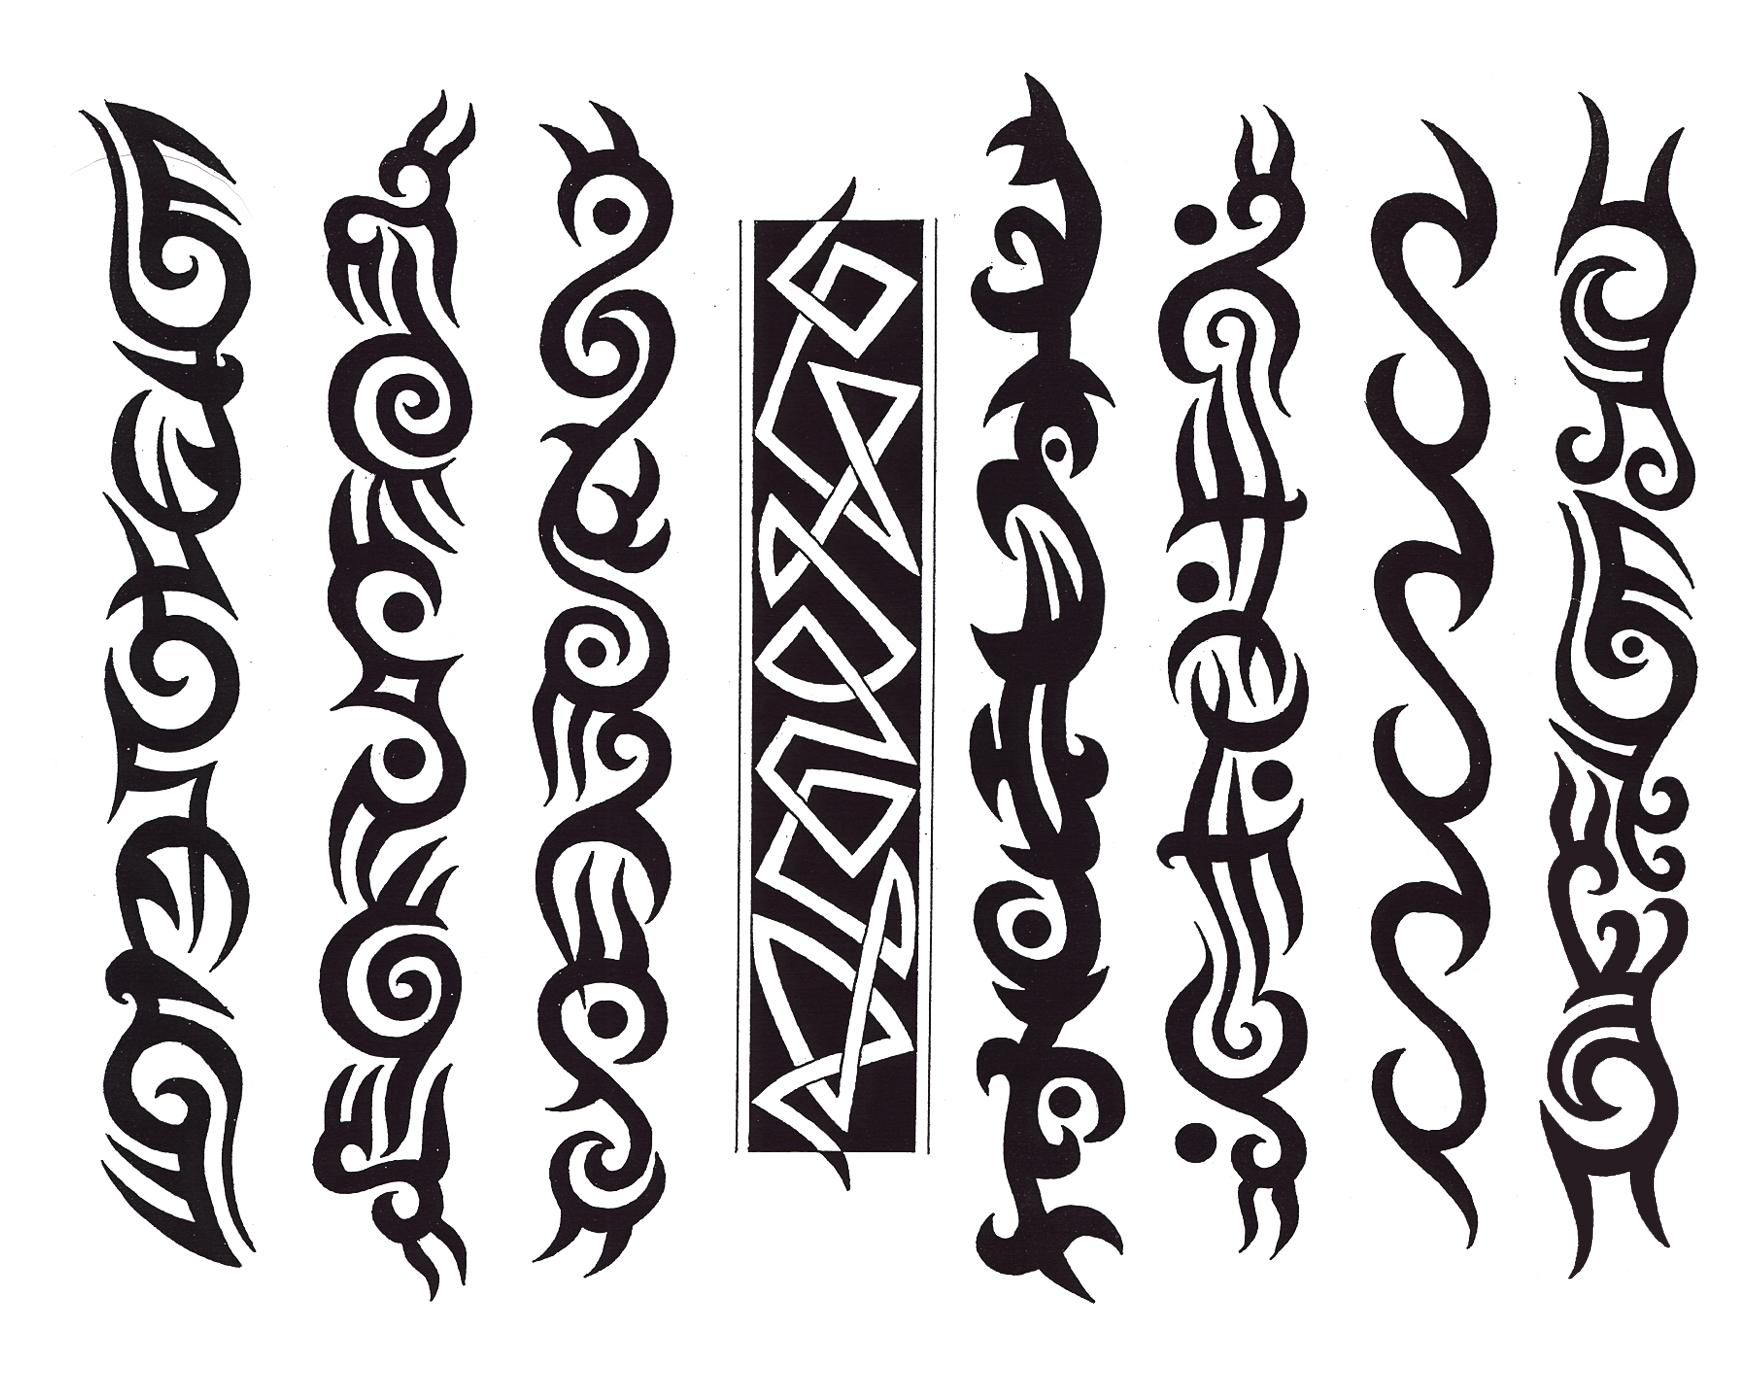 Tribal Tribal Tattoo Designs Latest Tattoo Designs Ideas for sizing 1750 X 1375